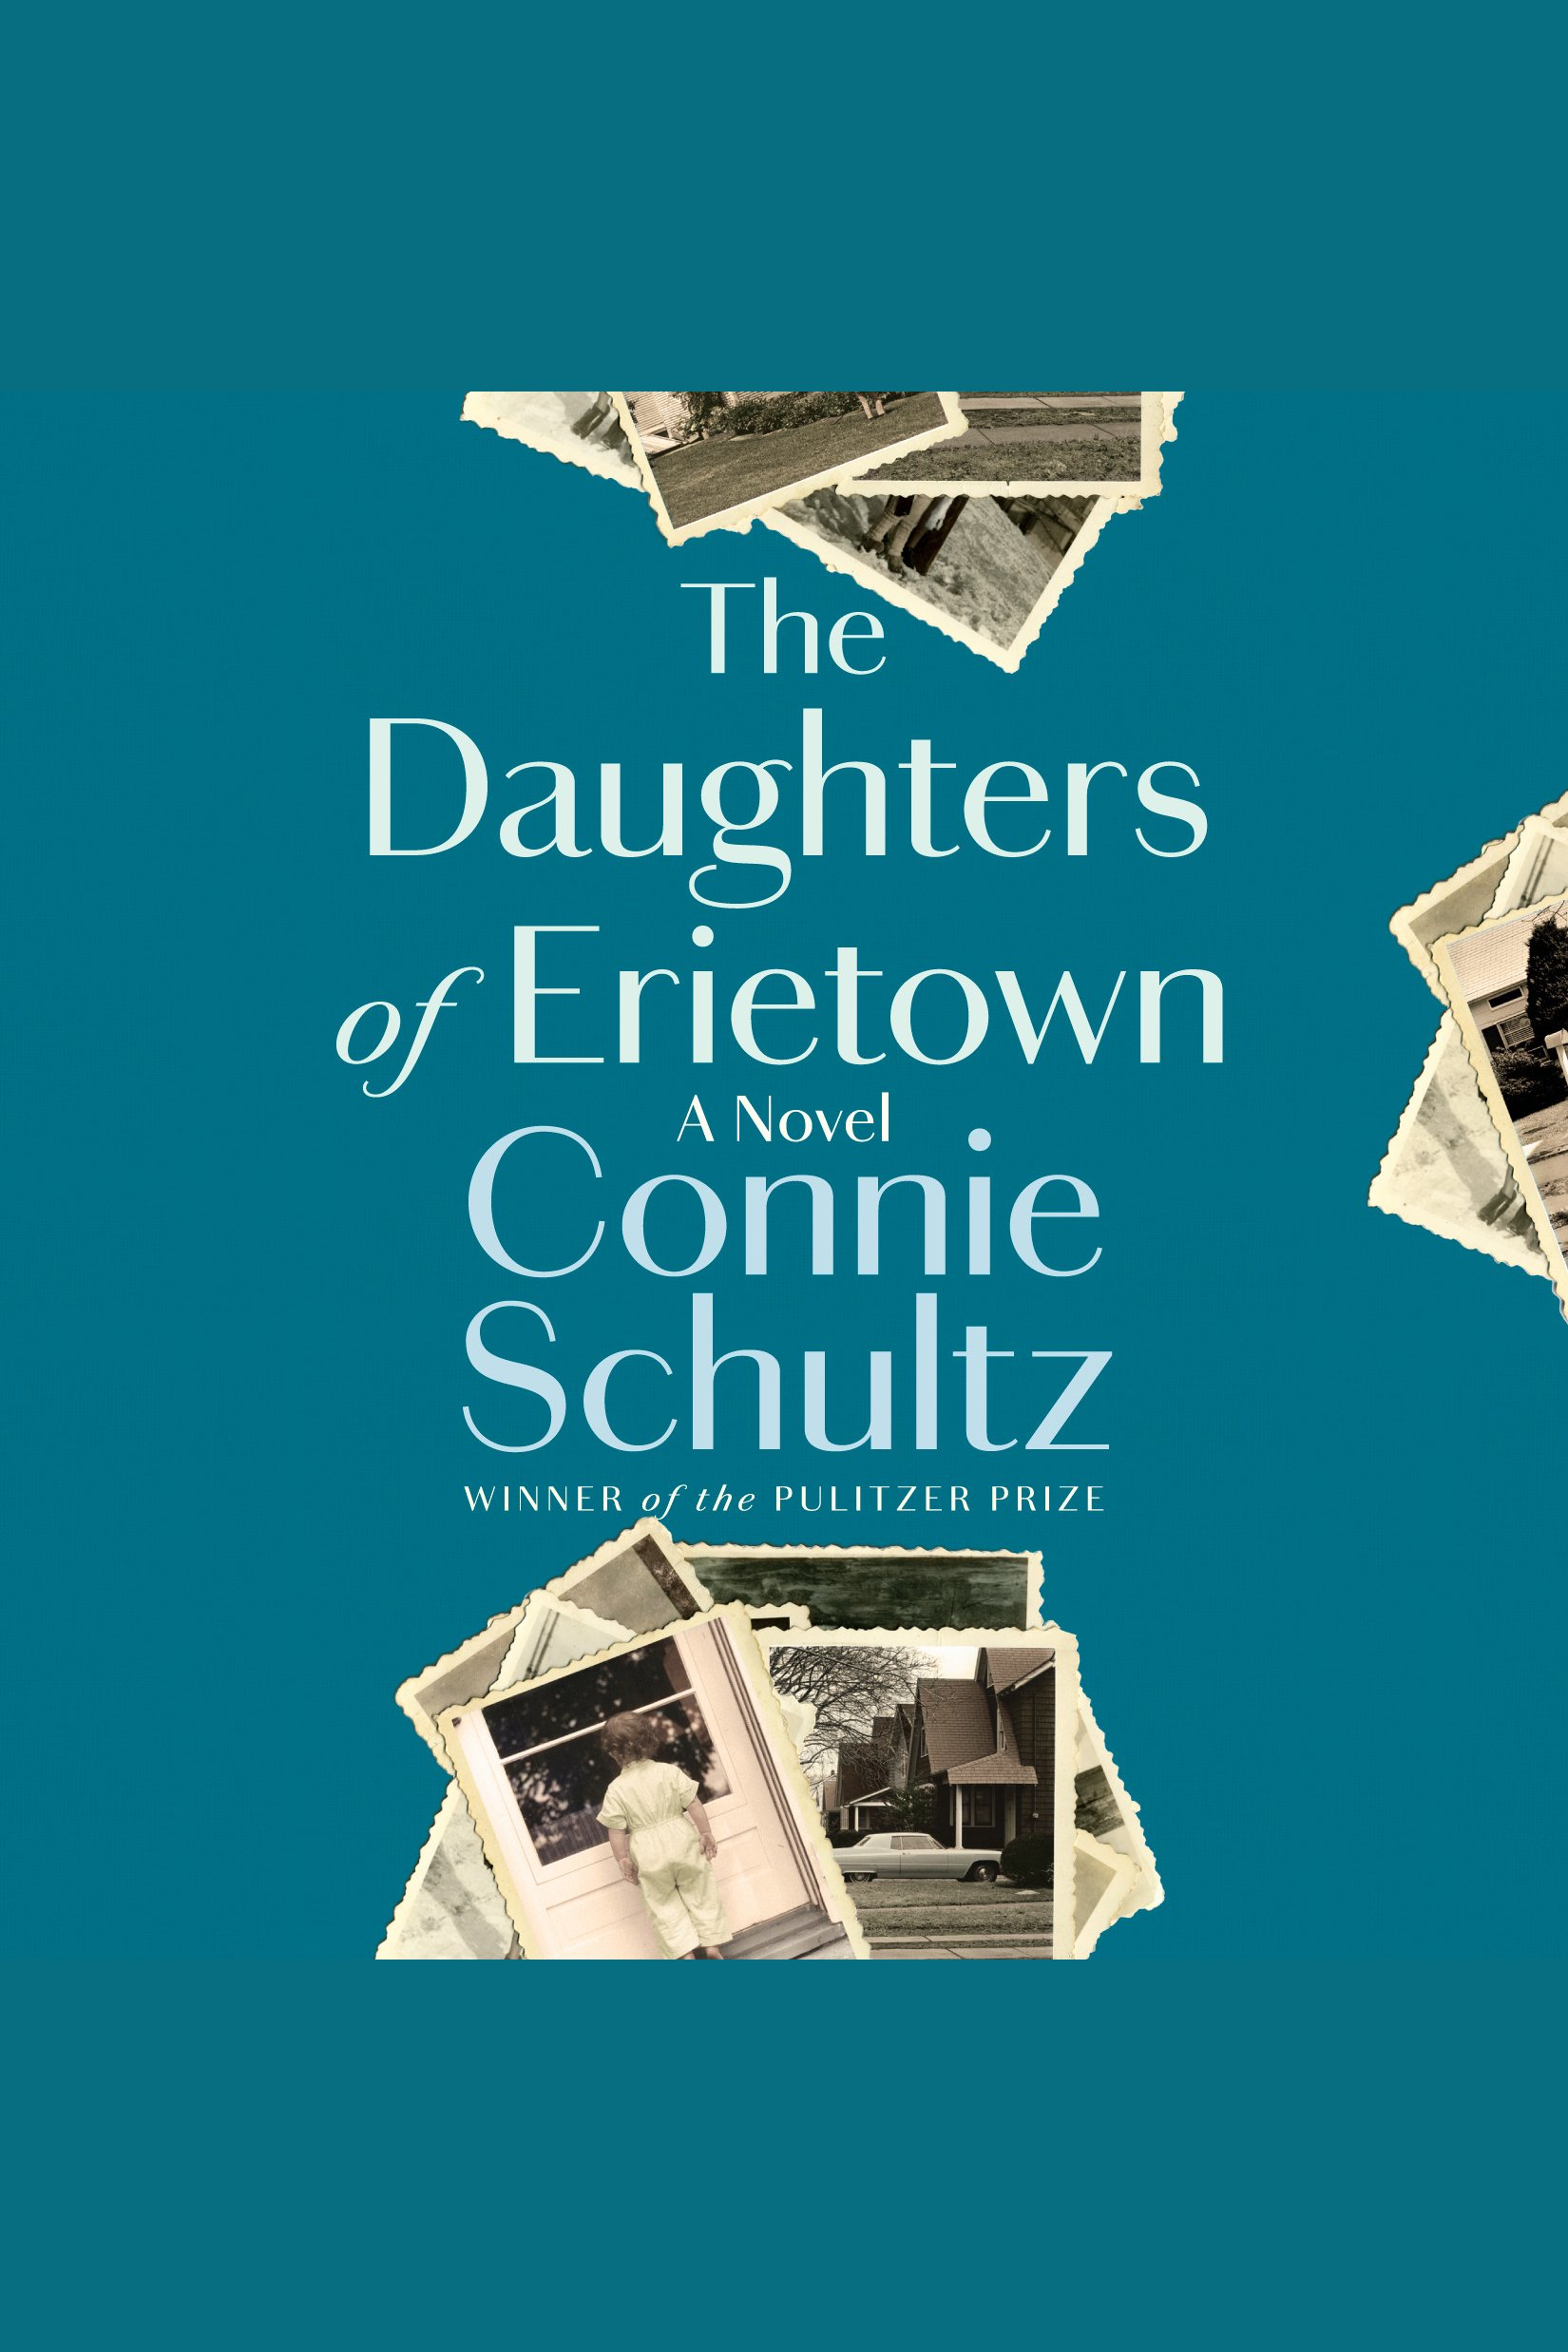 Daughters of Erietown, The A Novel